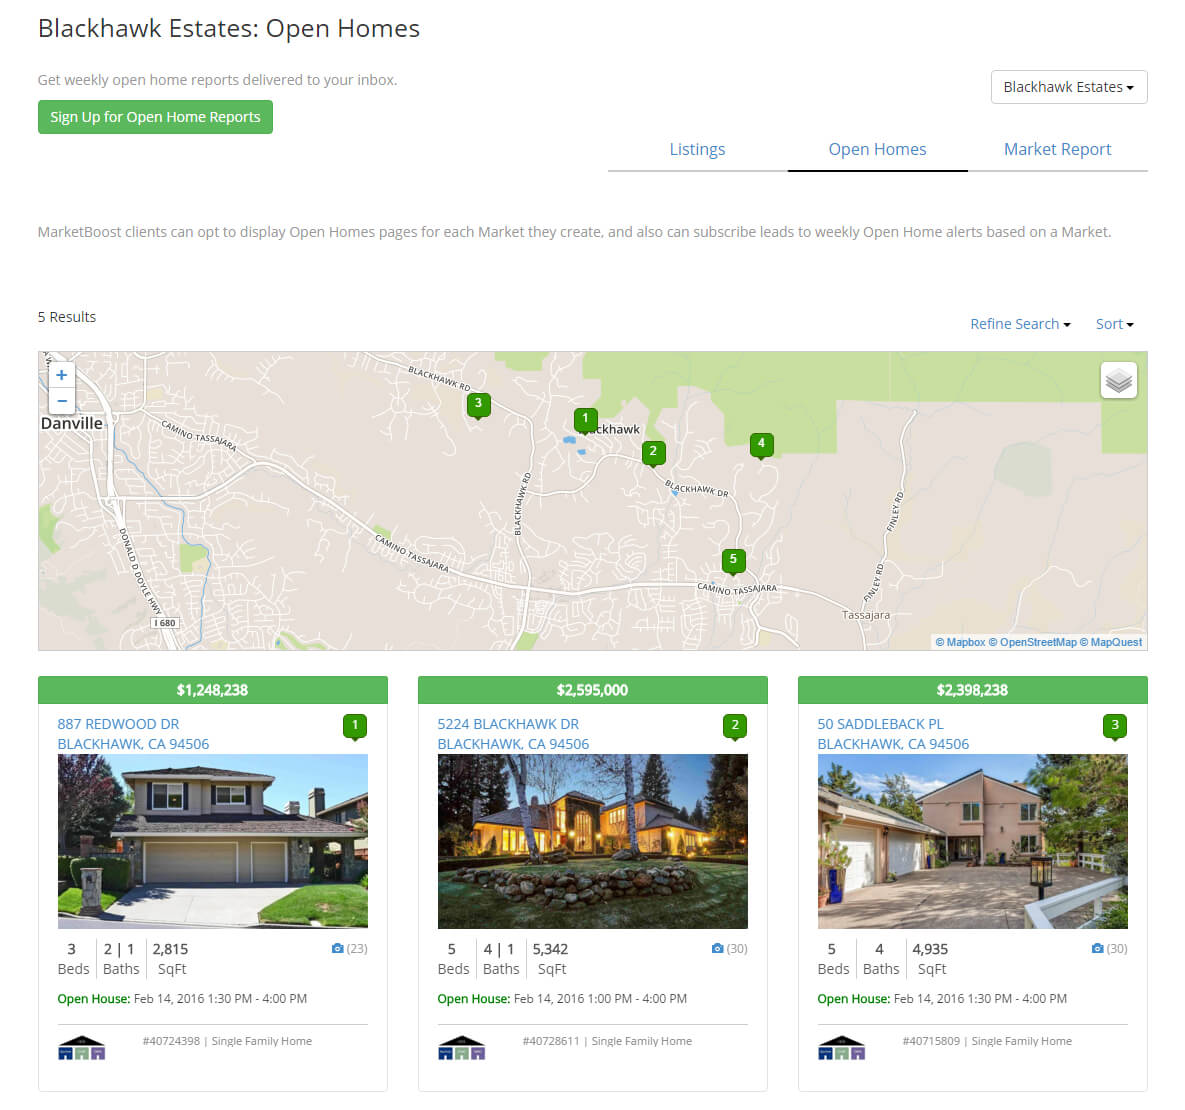 marketboost-ihomefinder-open-homes